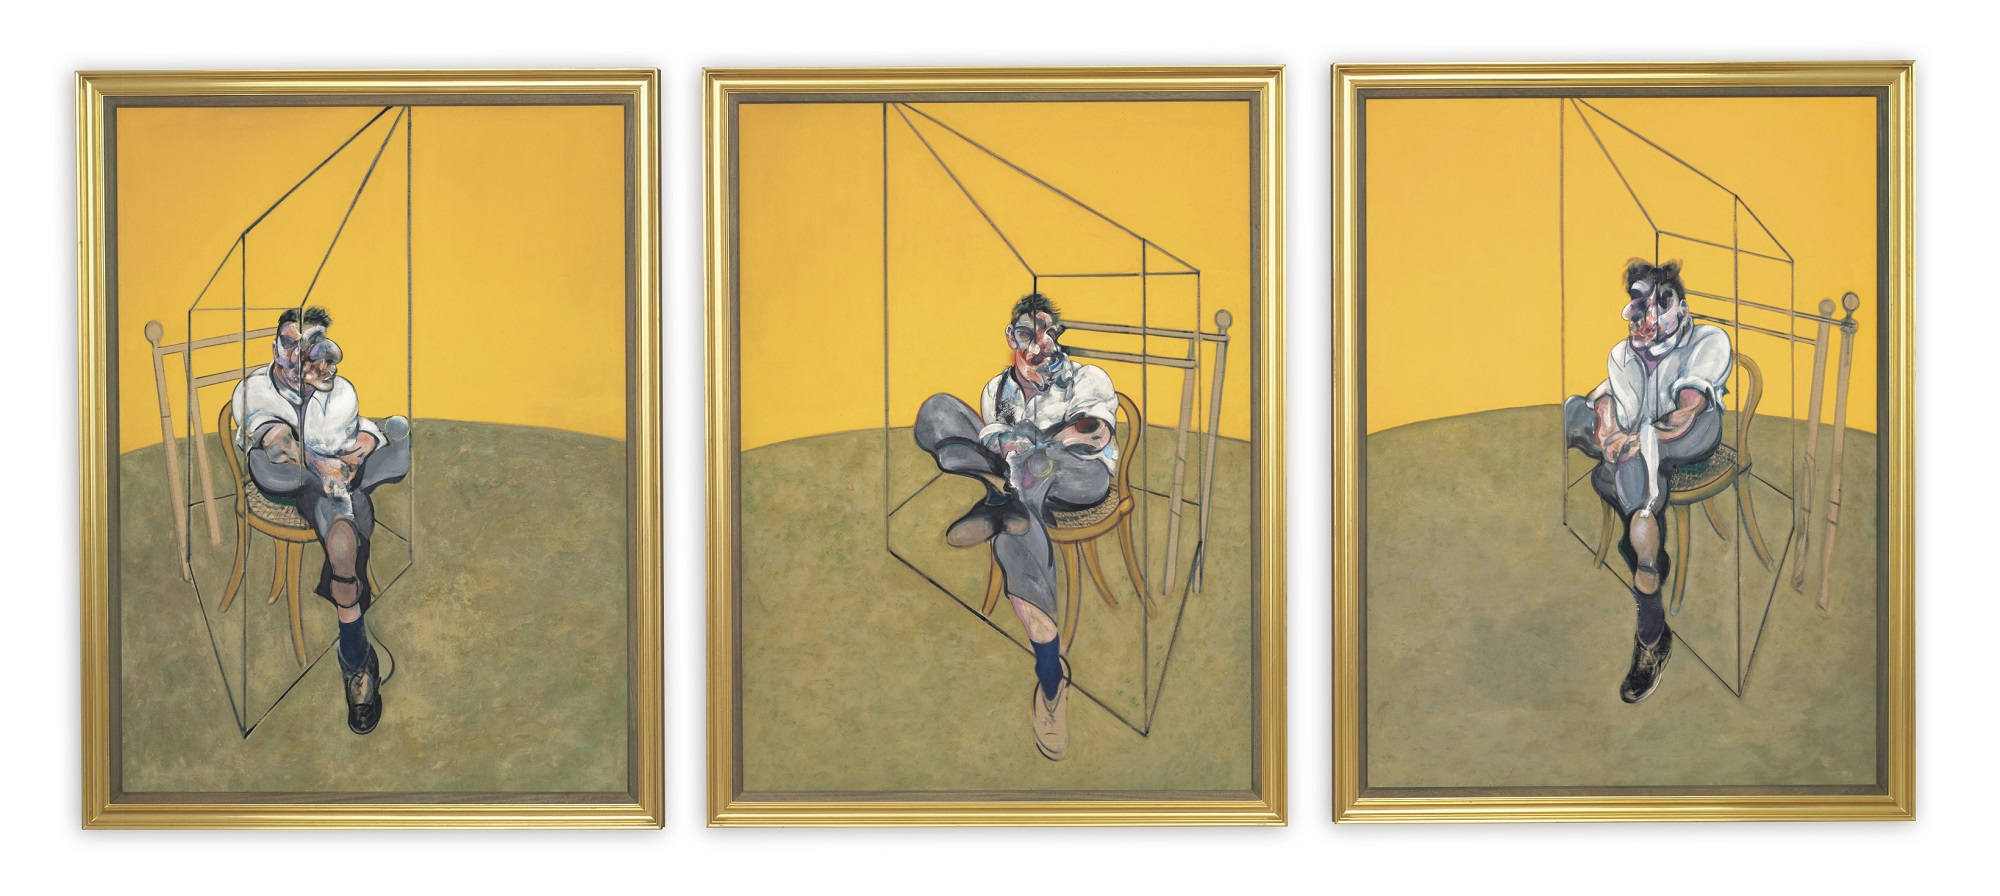 "'Three Studies of Lucian Freud' Francis Bacon Triptych, Oil on canvas, each panel 78"" x 58"", 1969. © The Estate of Francis Bacon. All rights reserved. / DACS, London / ARS, New York / Christie's Images Limited 2013"